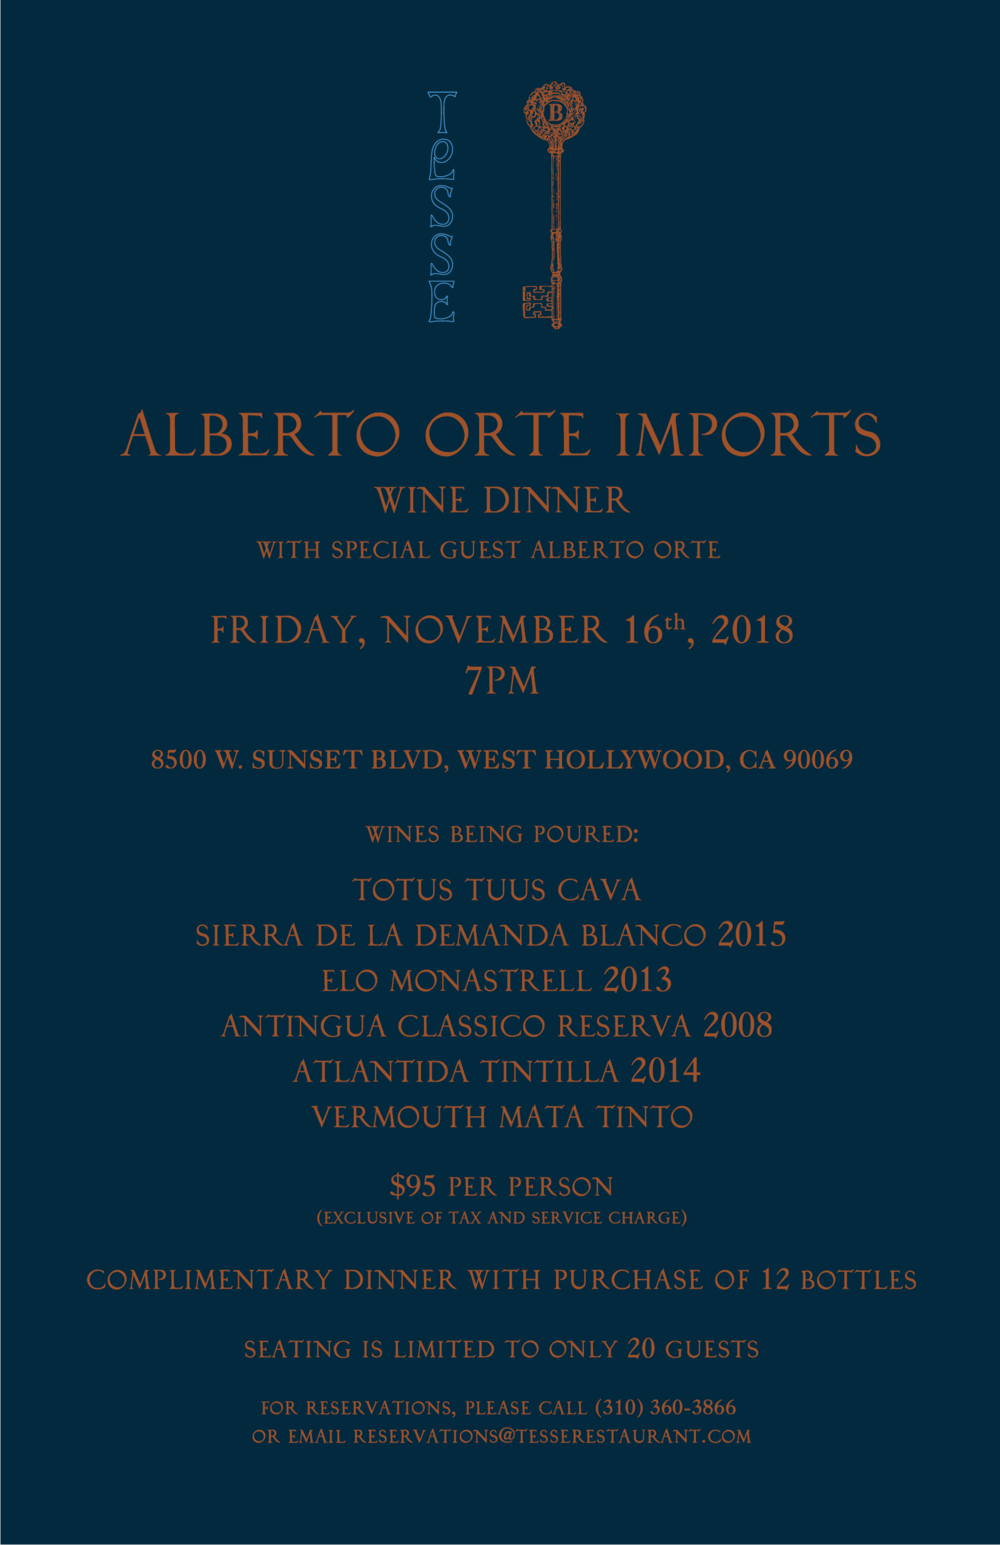 Alberto Orte Wine Dinner Invite.png